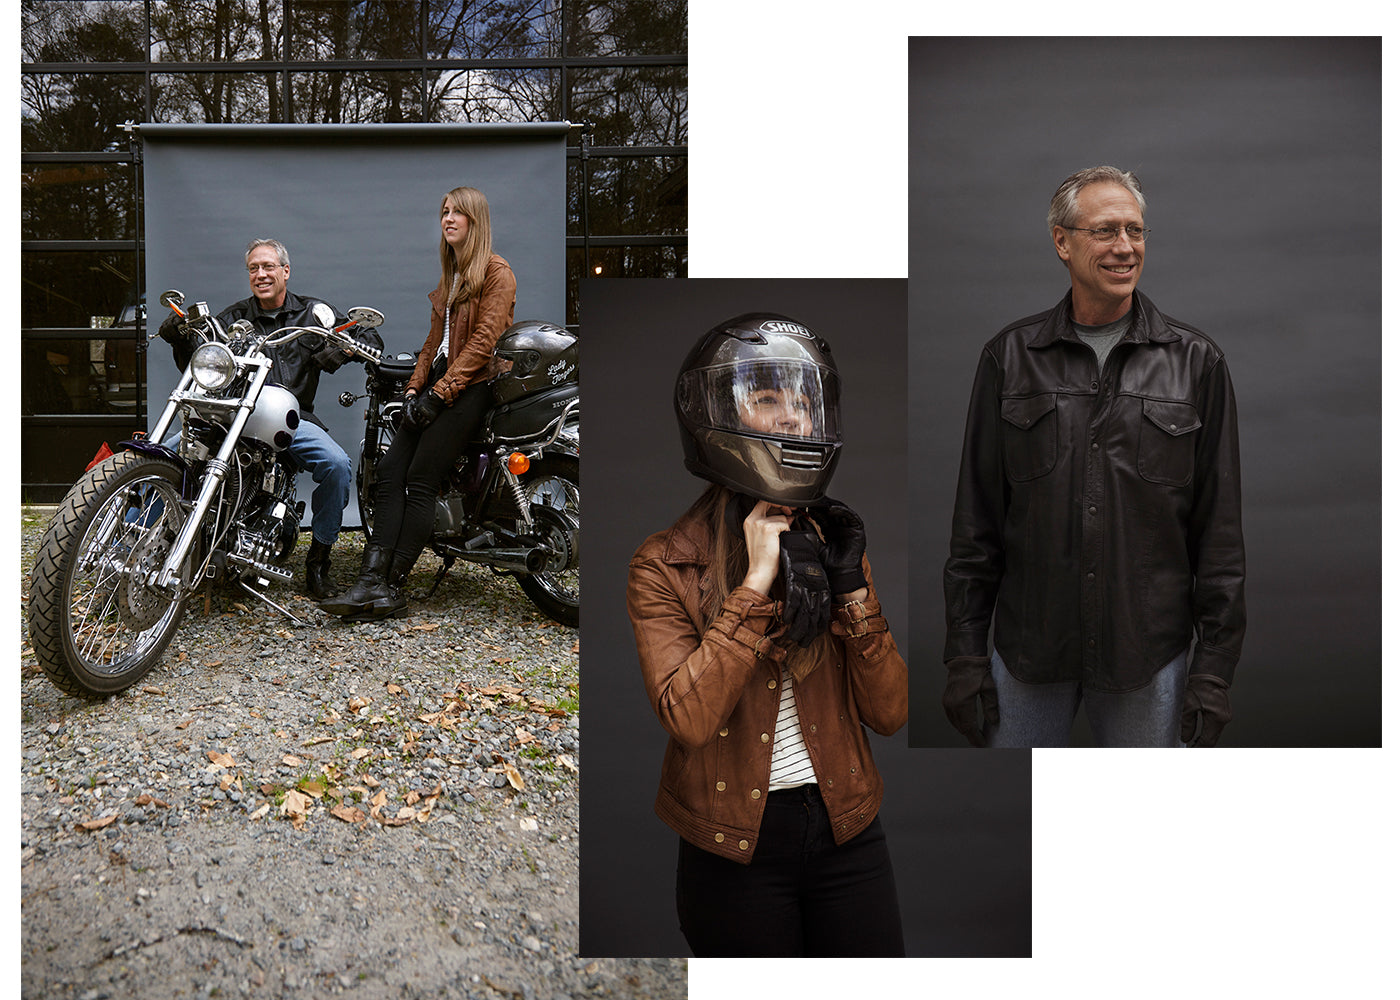 Father and daughter motorcycle ride